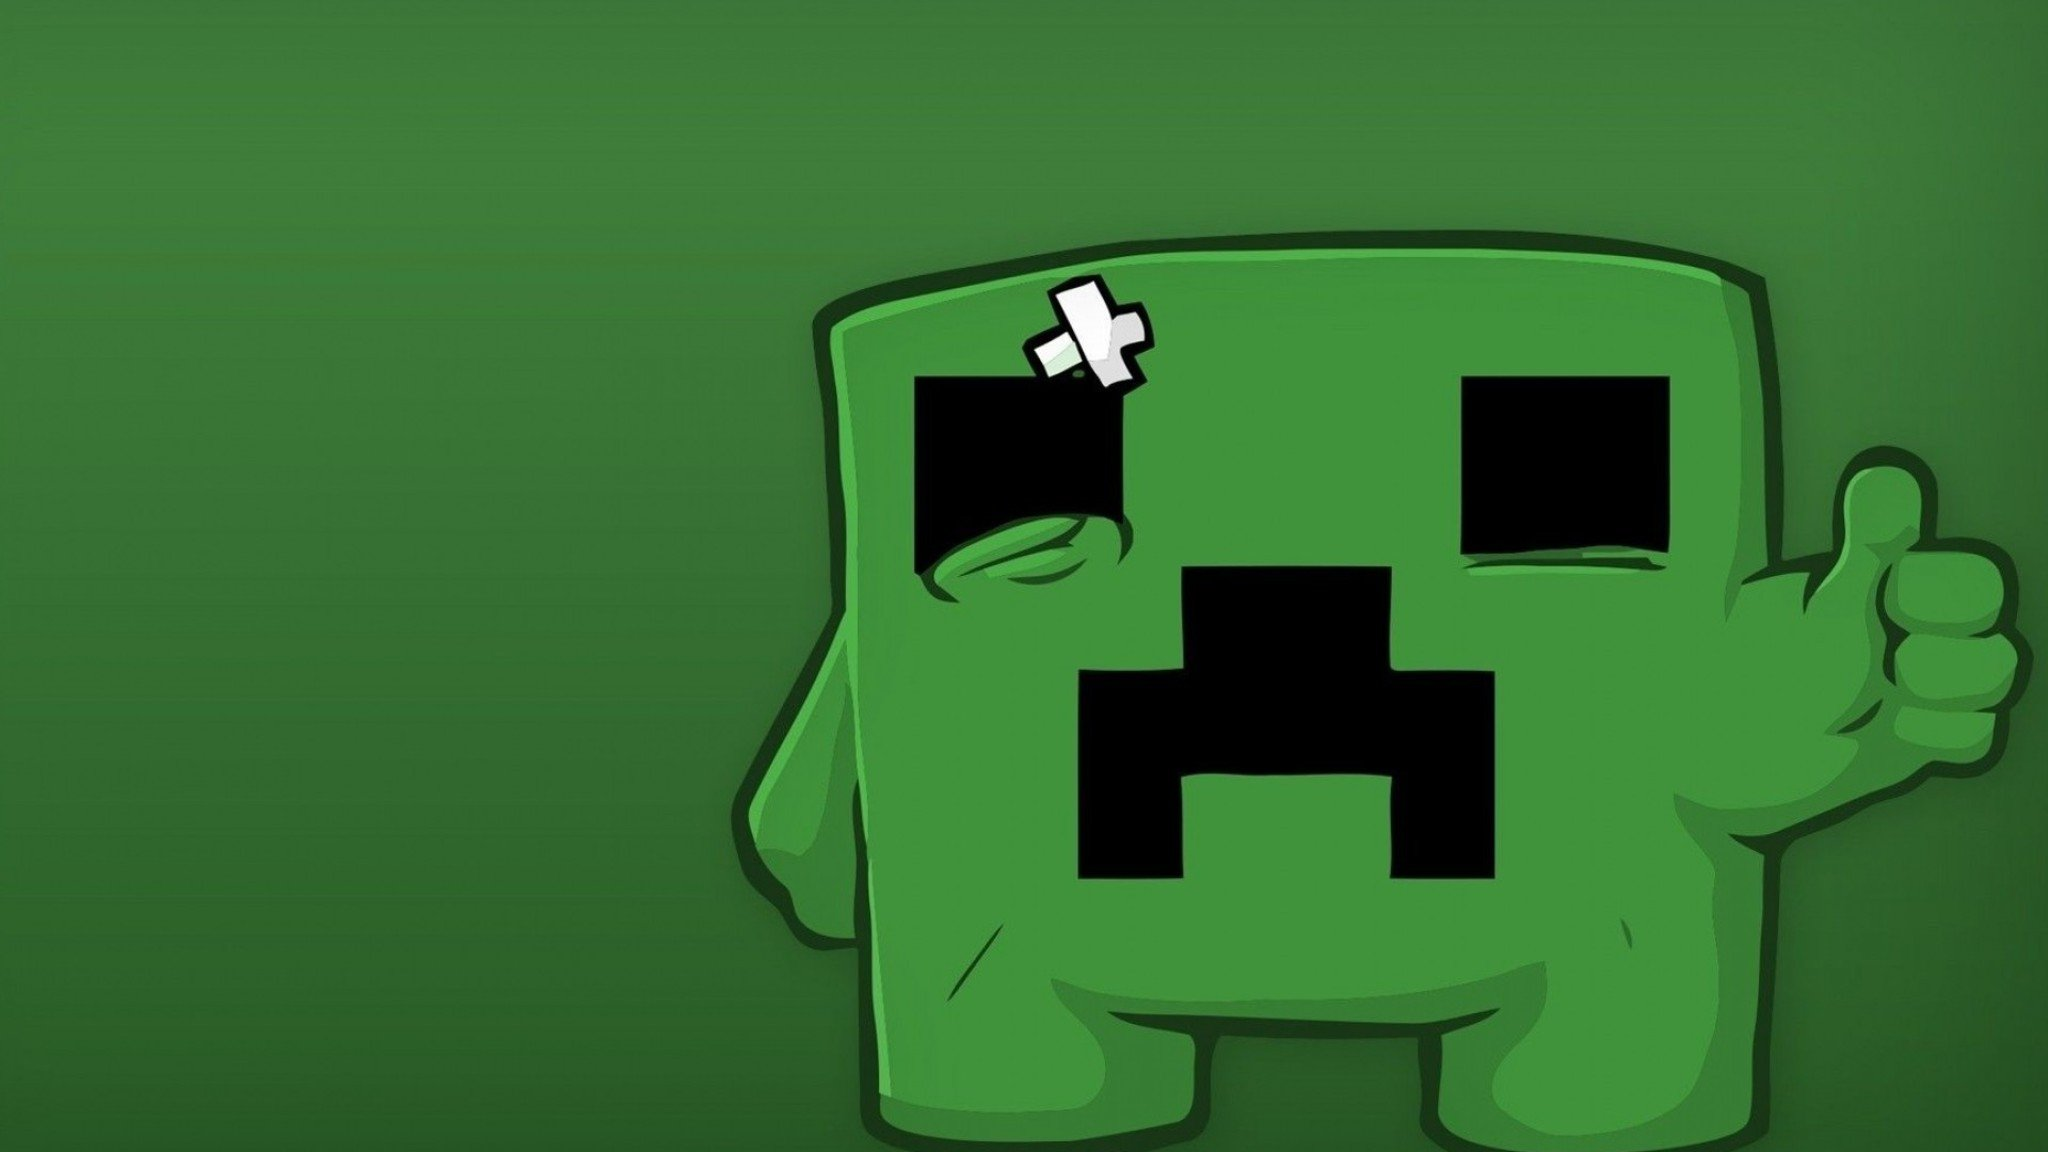 minecraft wallpaper 2048x1152 2048x1152 mine minecraft 2048 x 1152 2048x1152